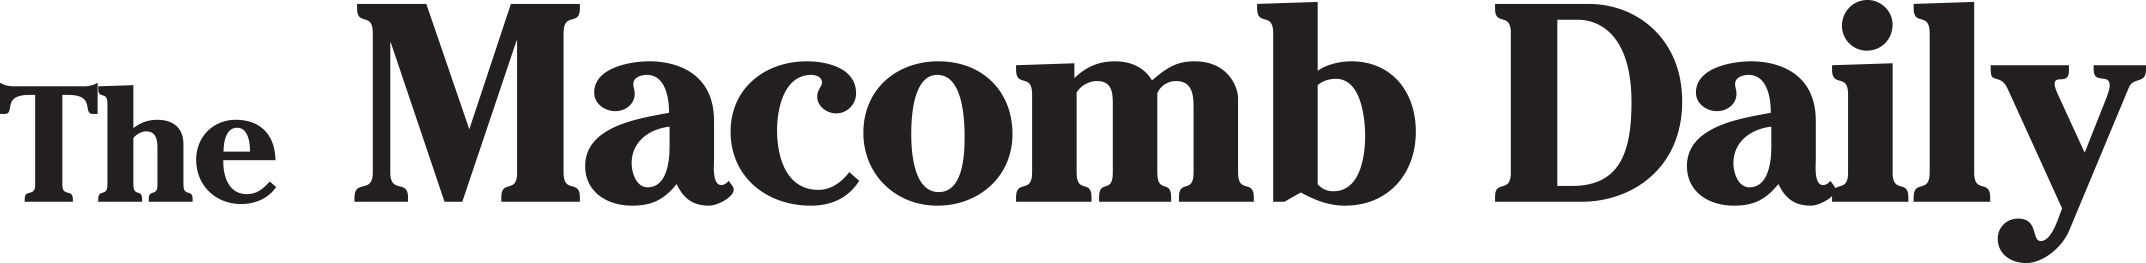 The Macomb Daily Logo.jpg